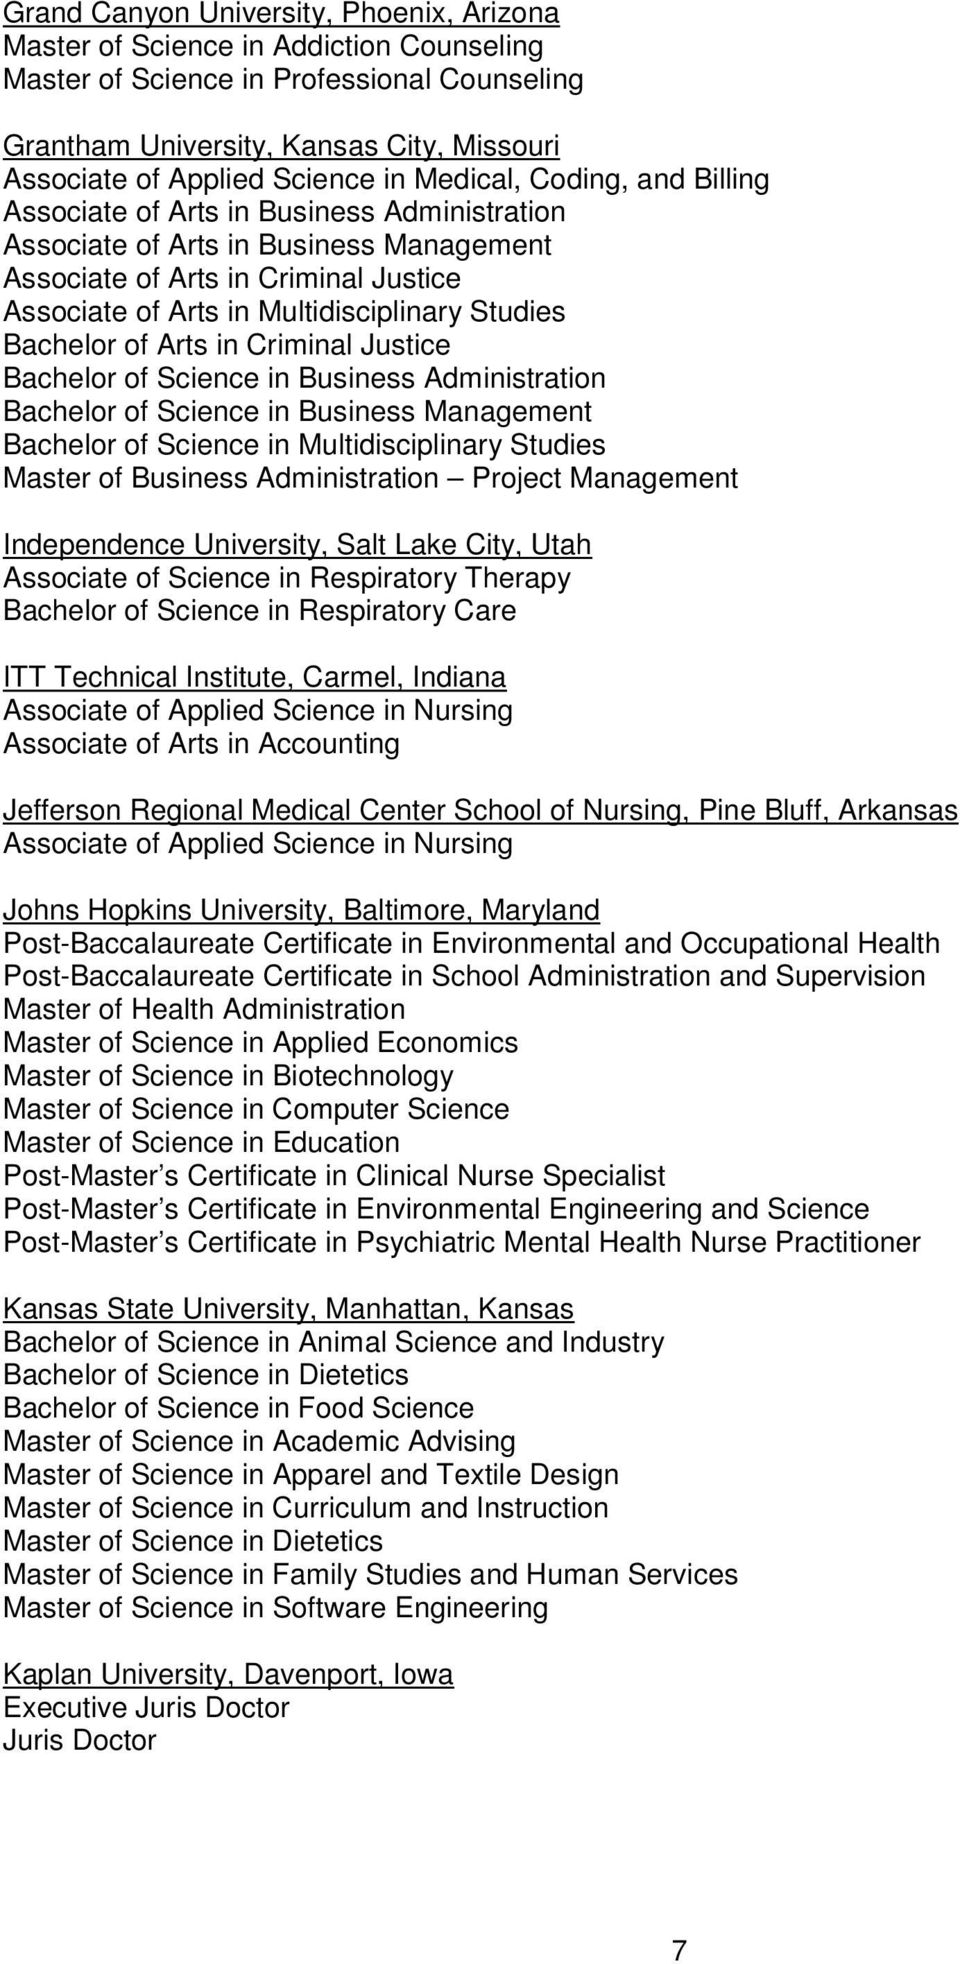 The Institution S Name Program Title And Program Summary Are